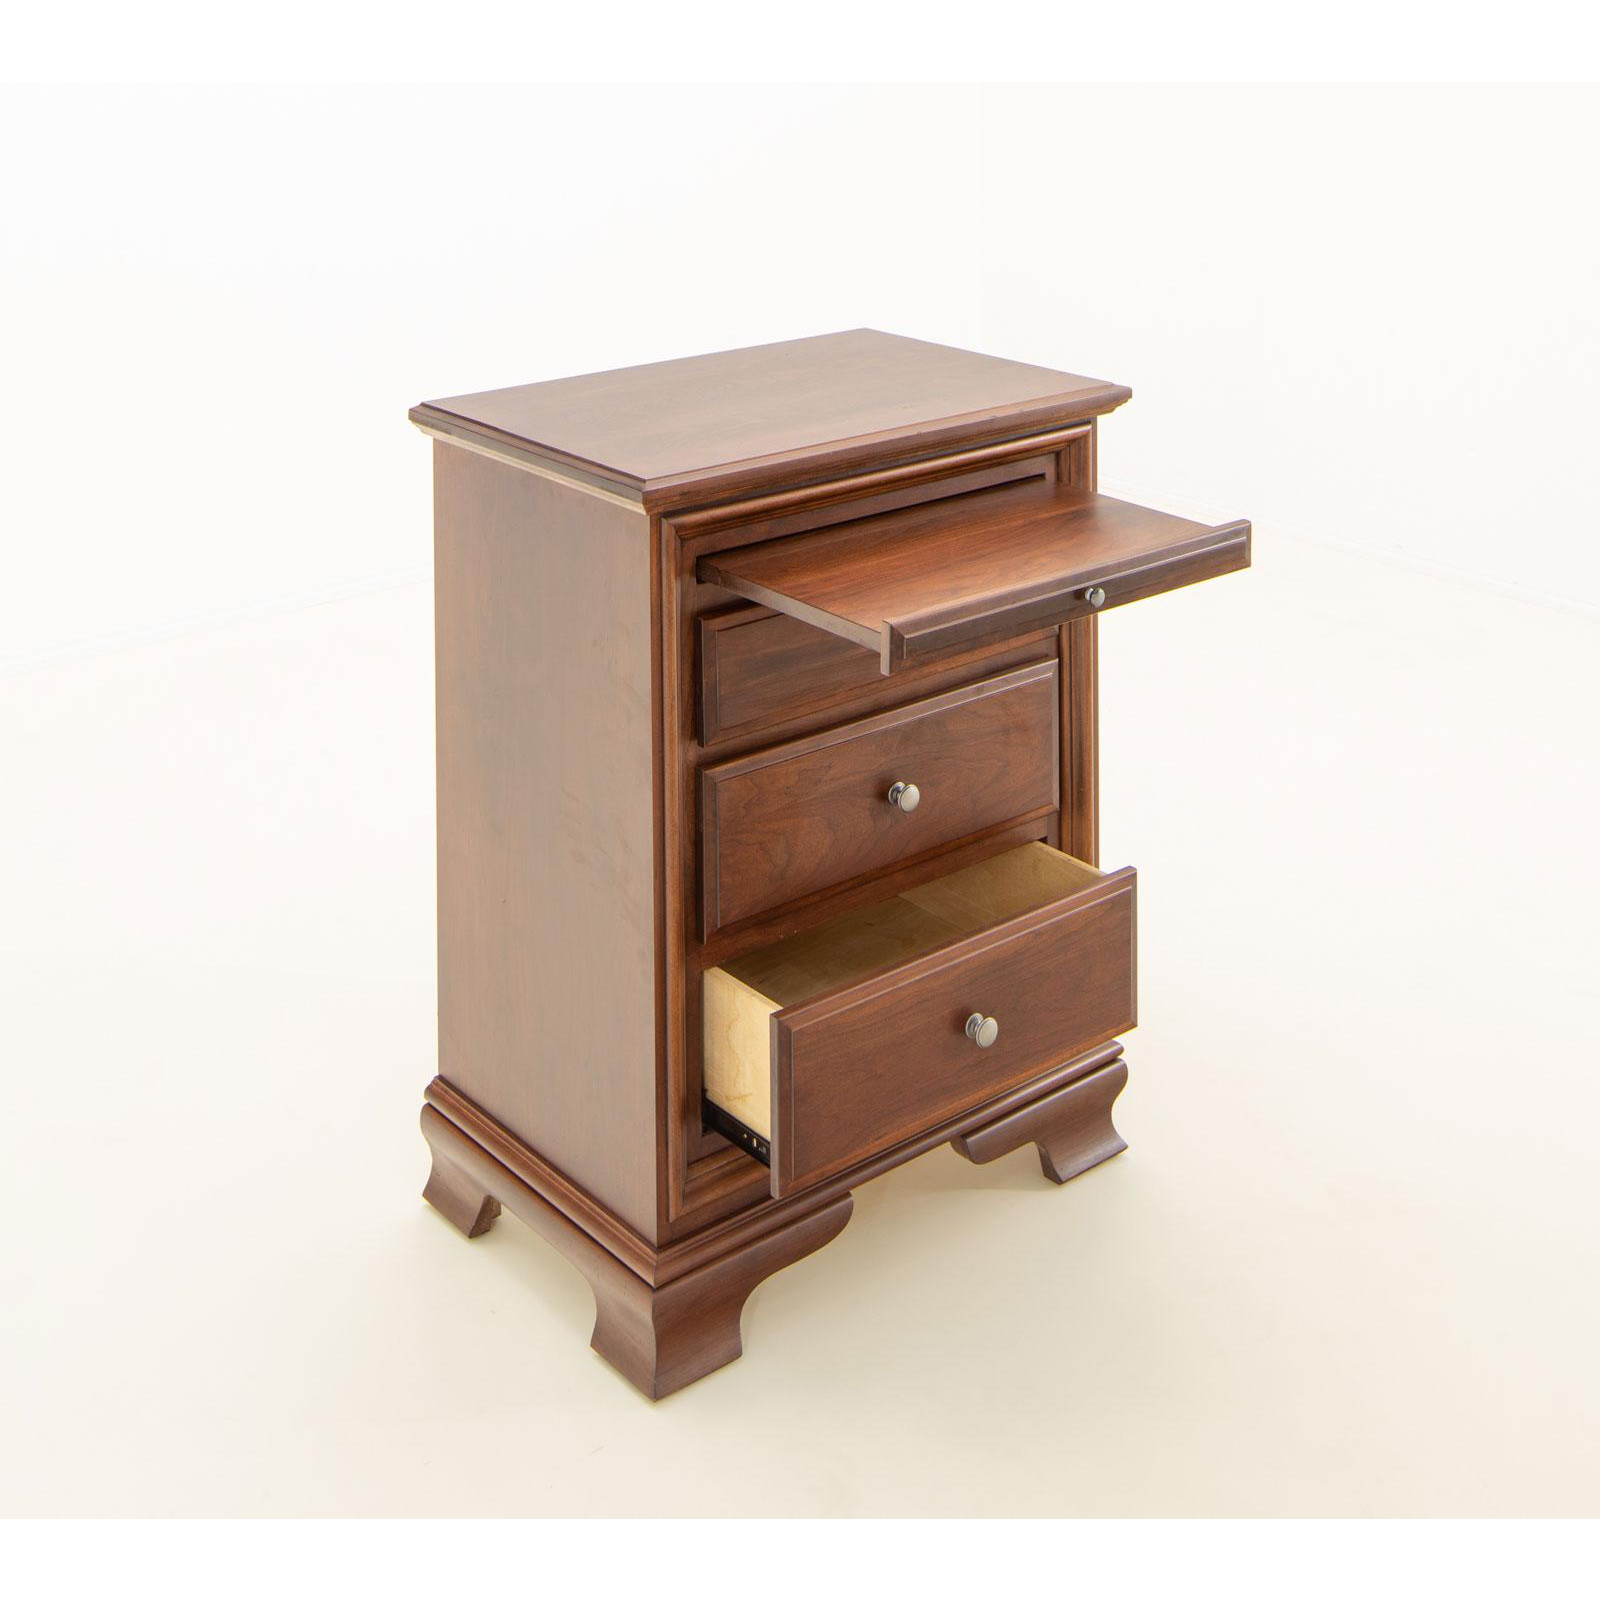 Amish Classic Nightstand with Pullout Shelf